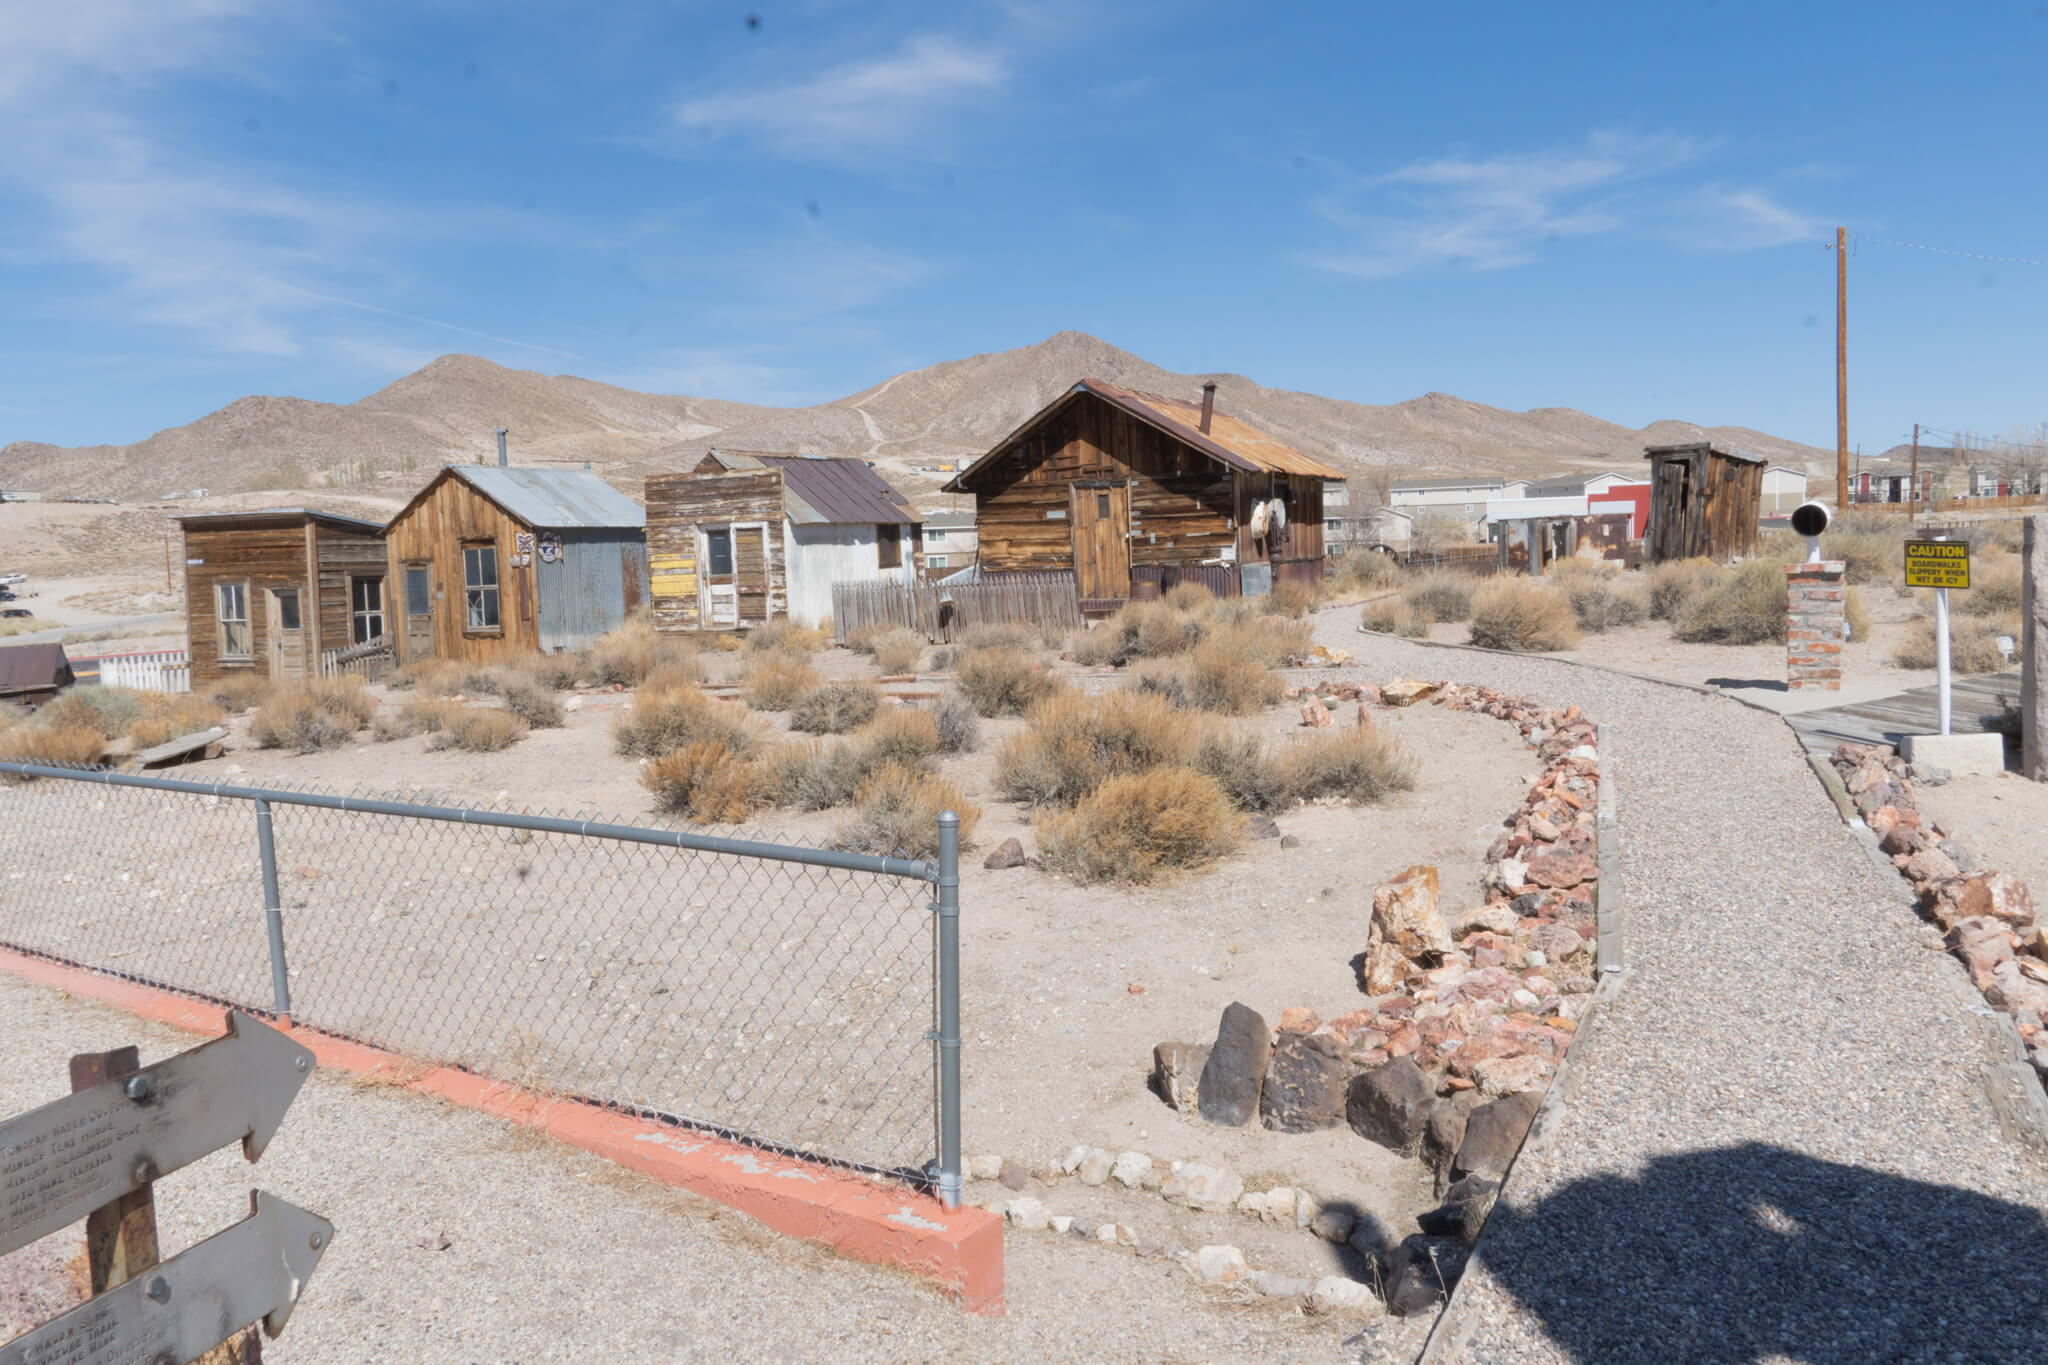 Things to do in Tonopah